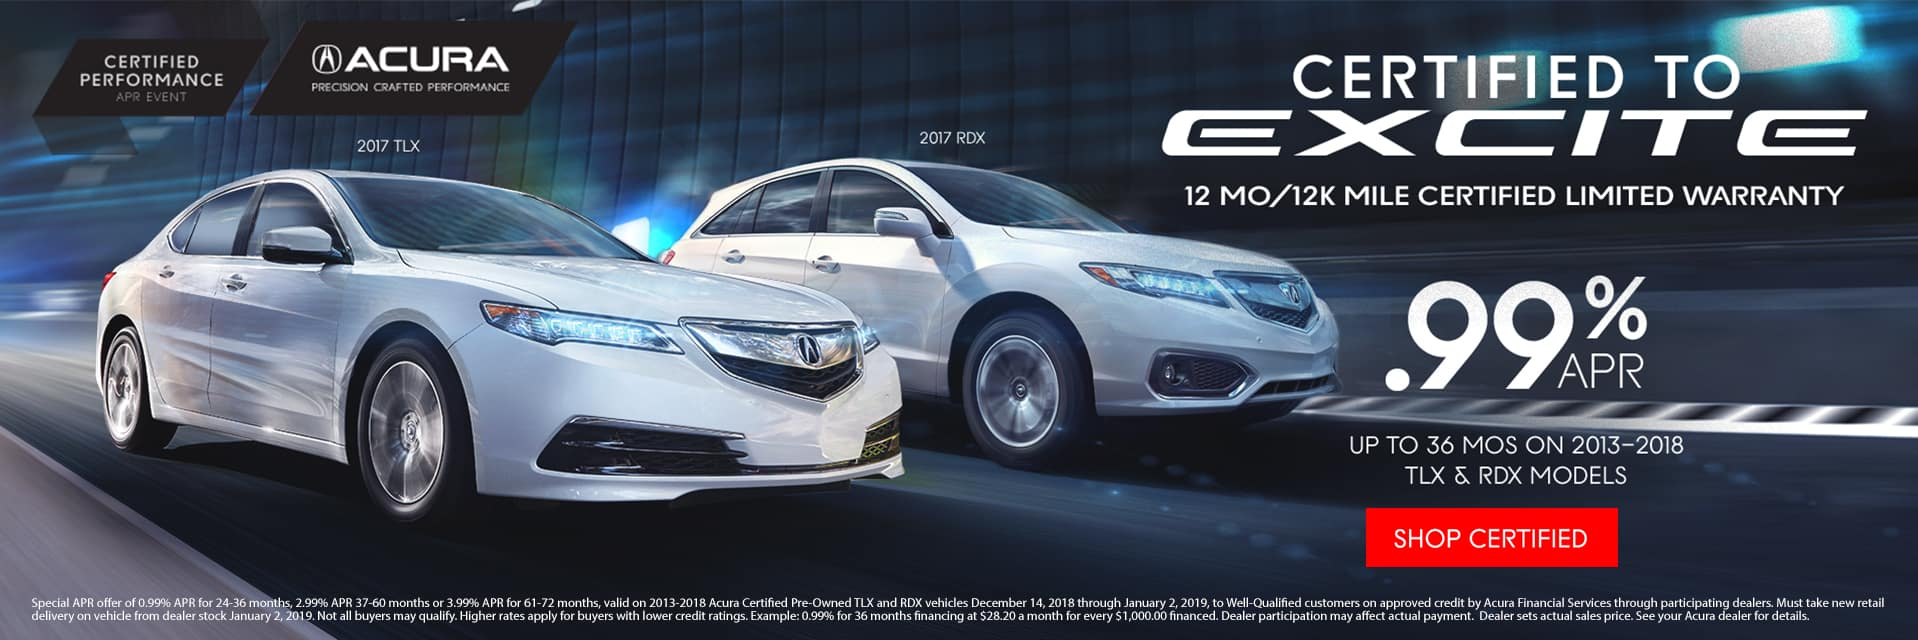 Acura Certified Pre-Owned for .99% APR